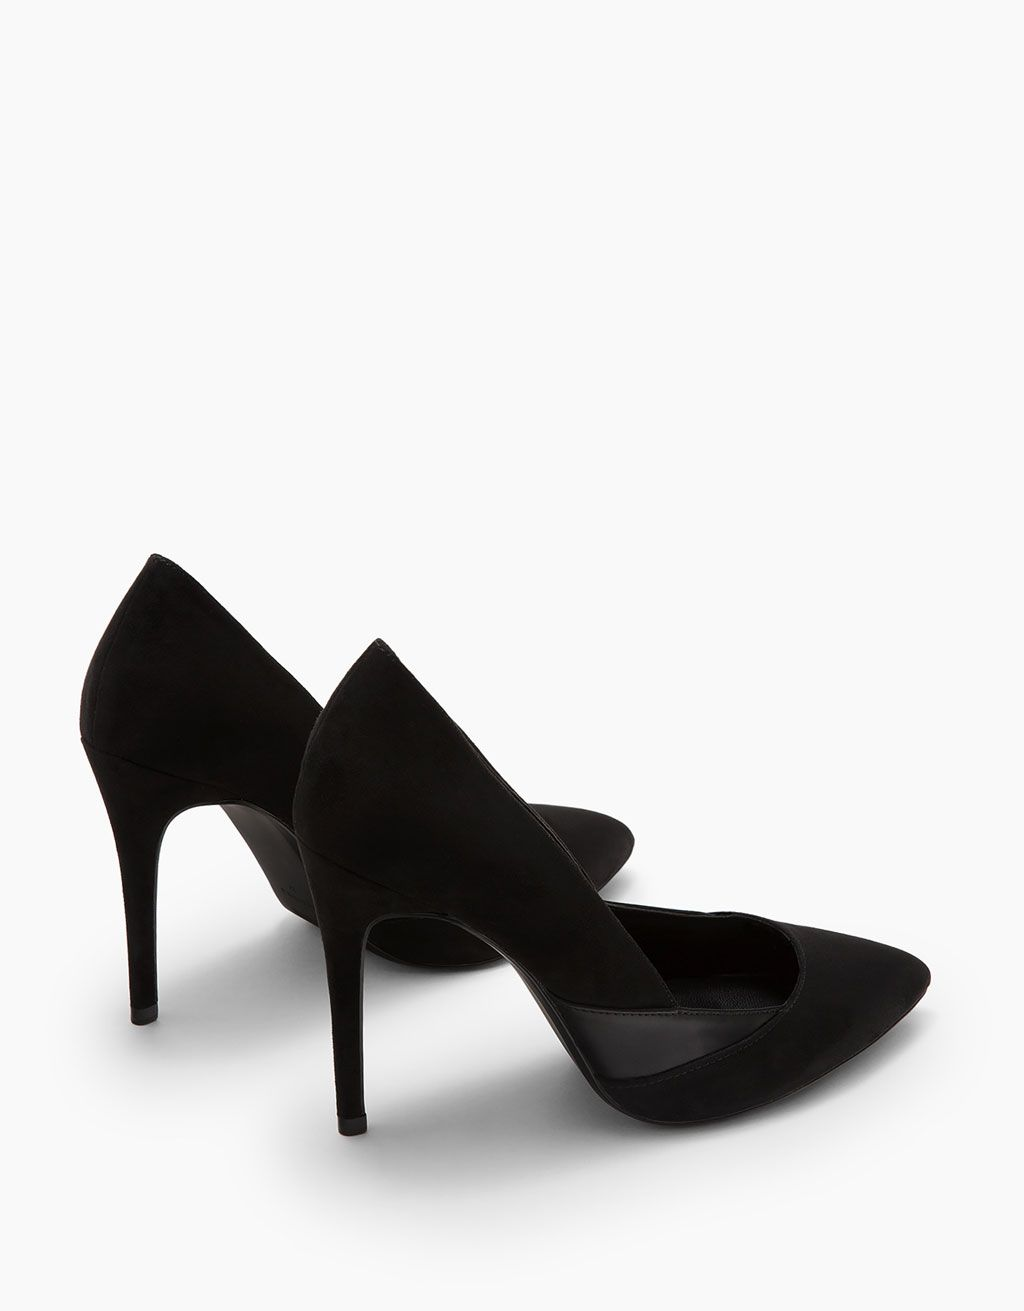 1024x1311 Combined Stiletto Heel Shoes